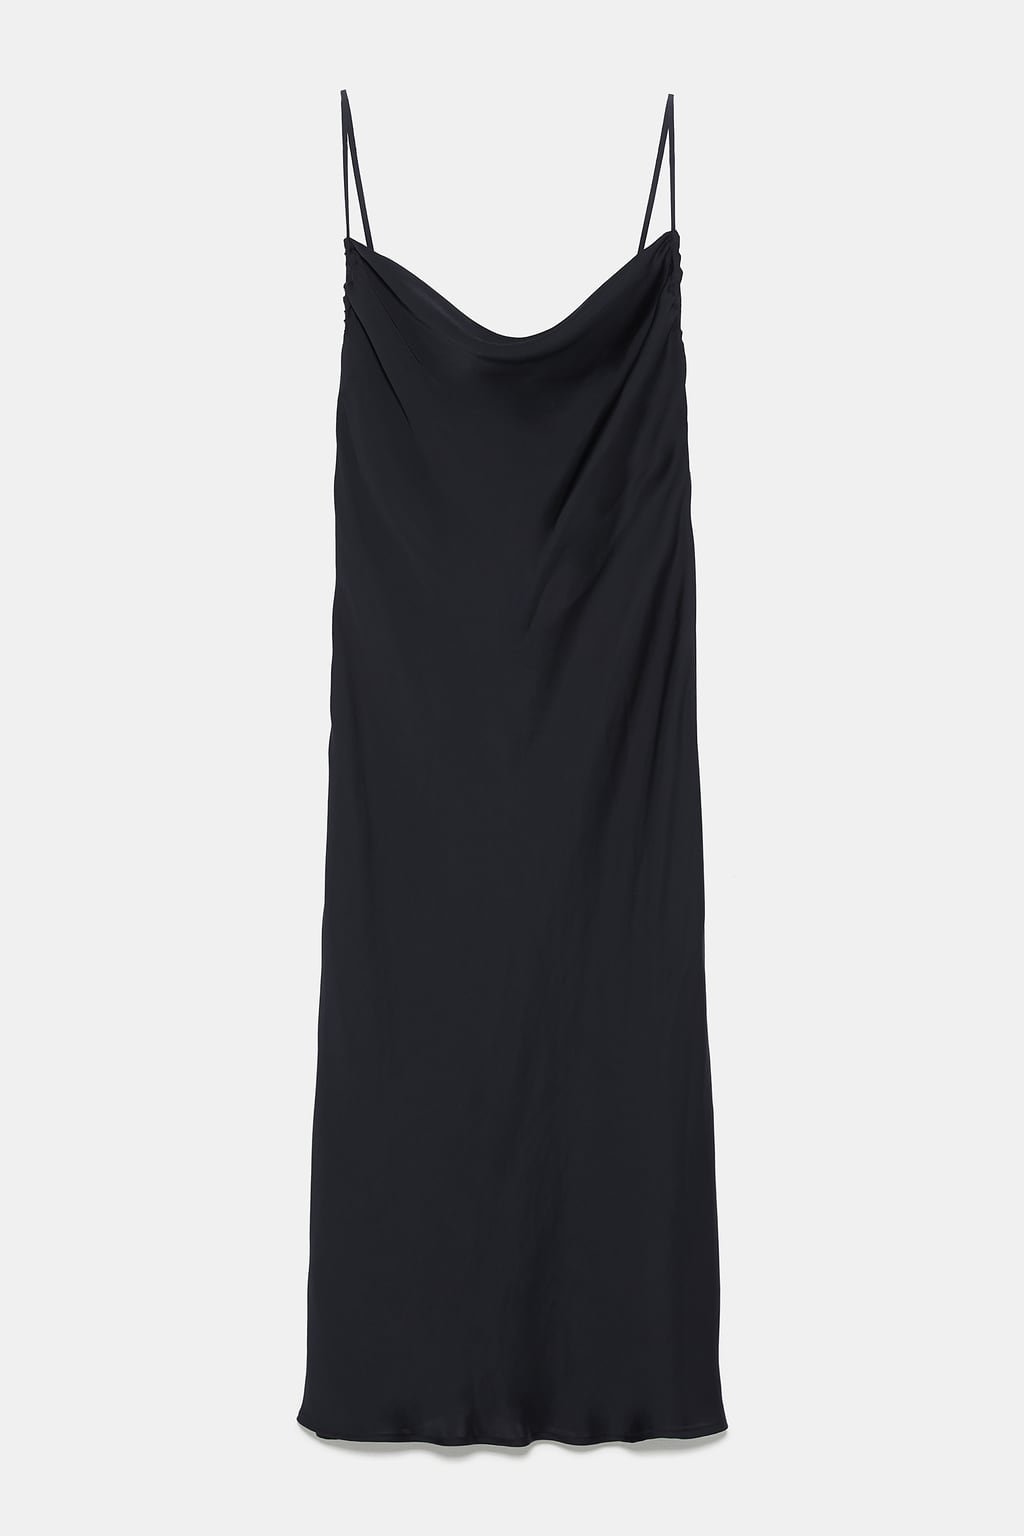 SLIP DRESS WITH STRAPS - NEW IN-WOMAN-NEW COLLECTION | ZARA United States black